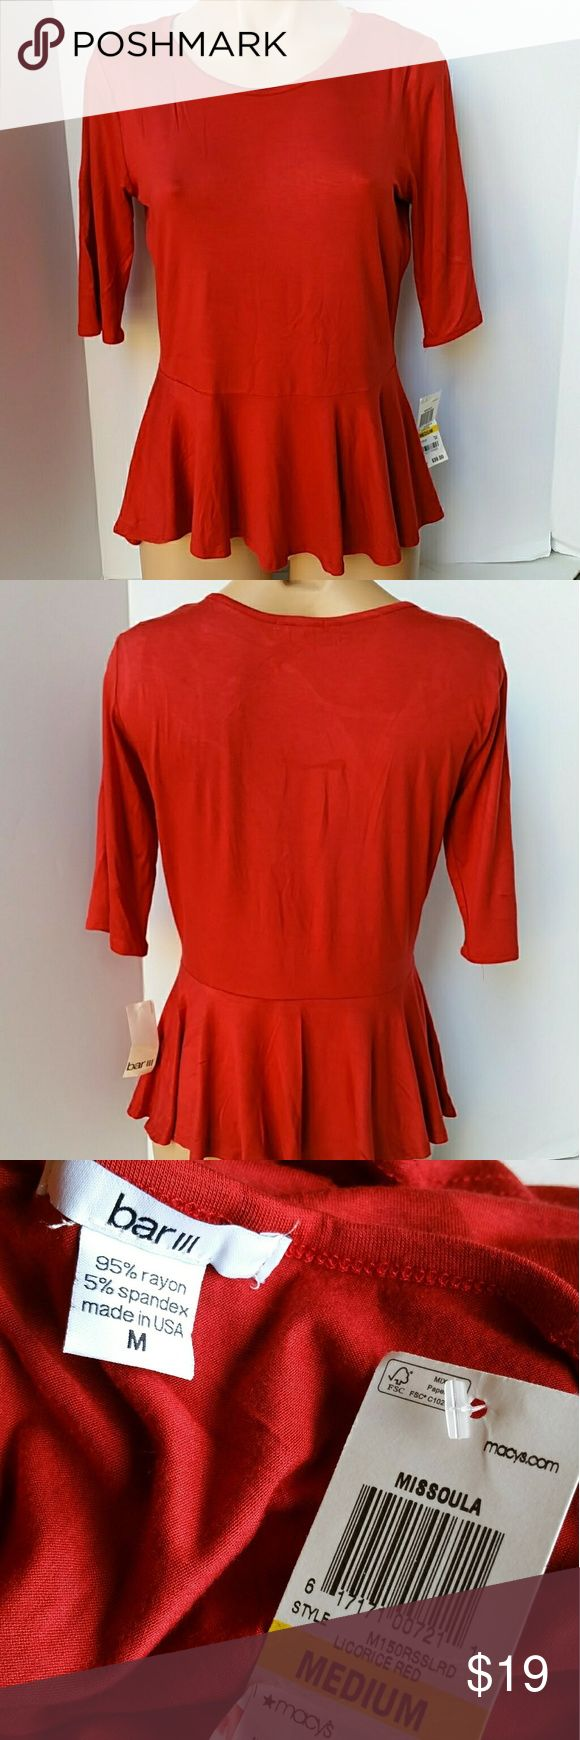 """Bar 111 Red Peplum  Top/Blouse  Sz M. Cute, red Peplum blouse. Good for summer and all seasons, goes nice with jeans, leggings, etc. Awesome 4th of July top, and fits really nice with the word """"summer"""".   📍📌📬Add my closet to your favorite for new arrivals. I add new items to my closet every day.  ❌🚫No trading. ❌🚫Lowballing ✔Offers through offer button. Bar III Tops Blouses"""